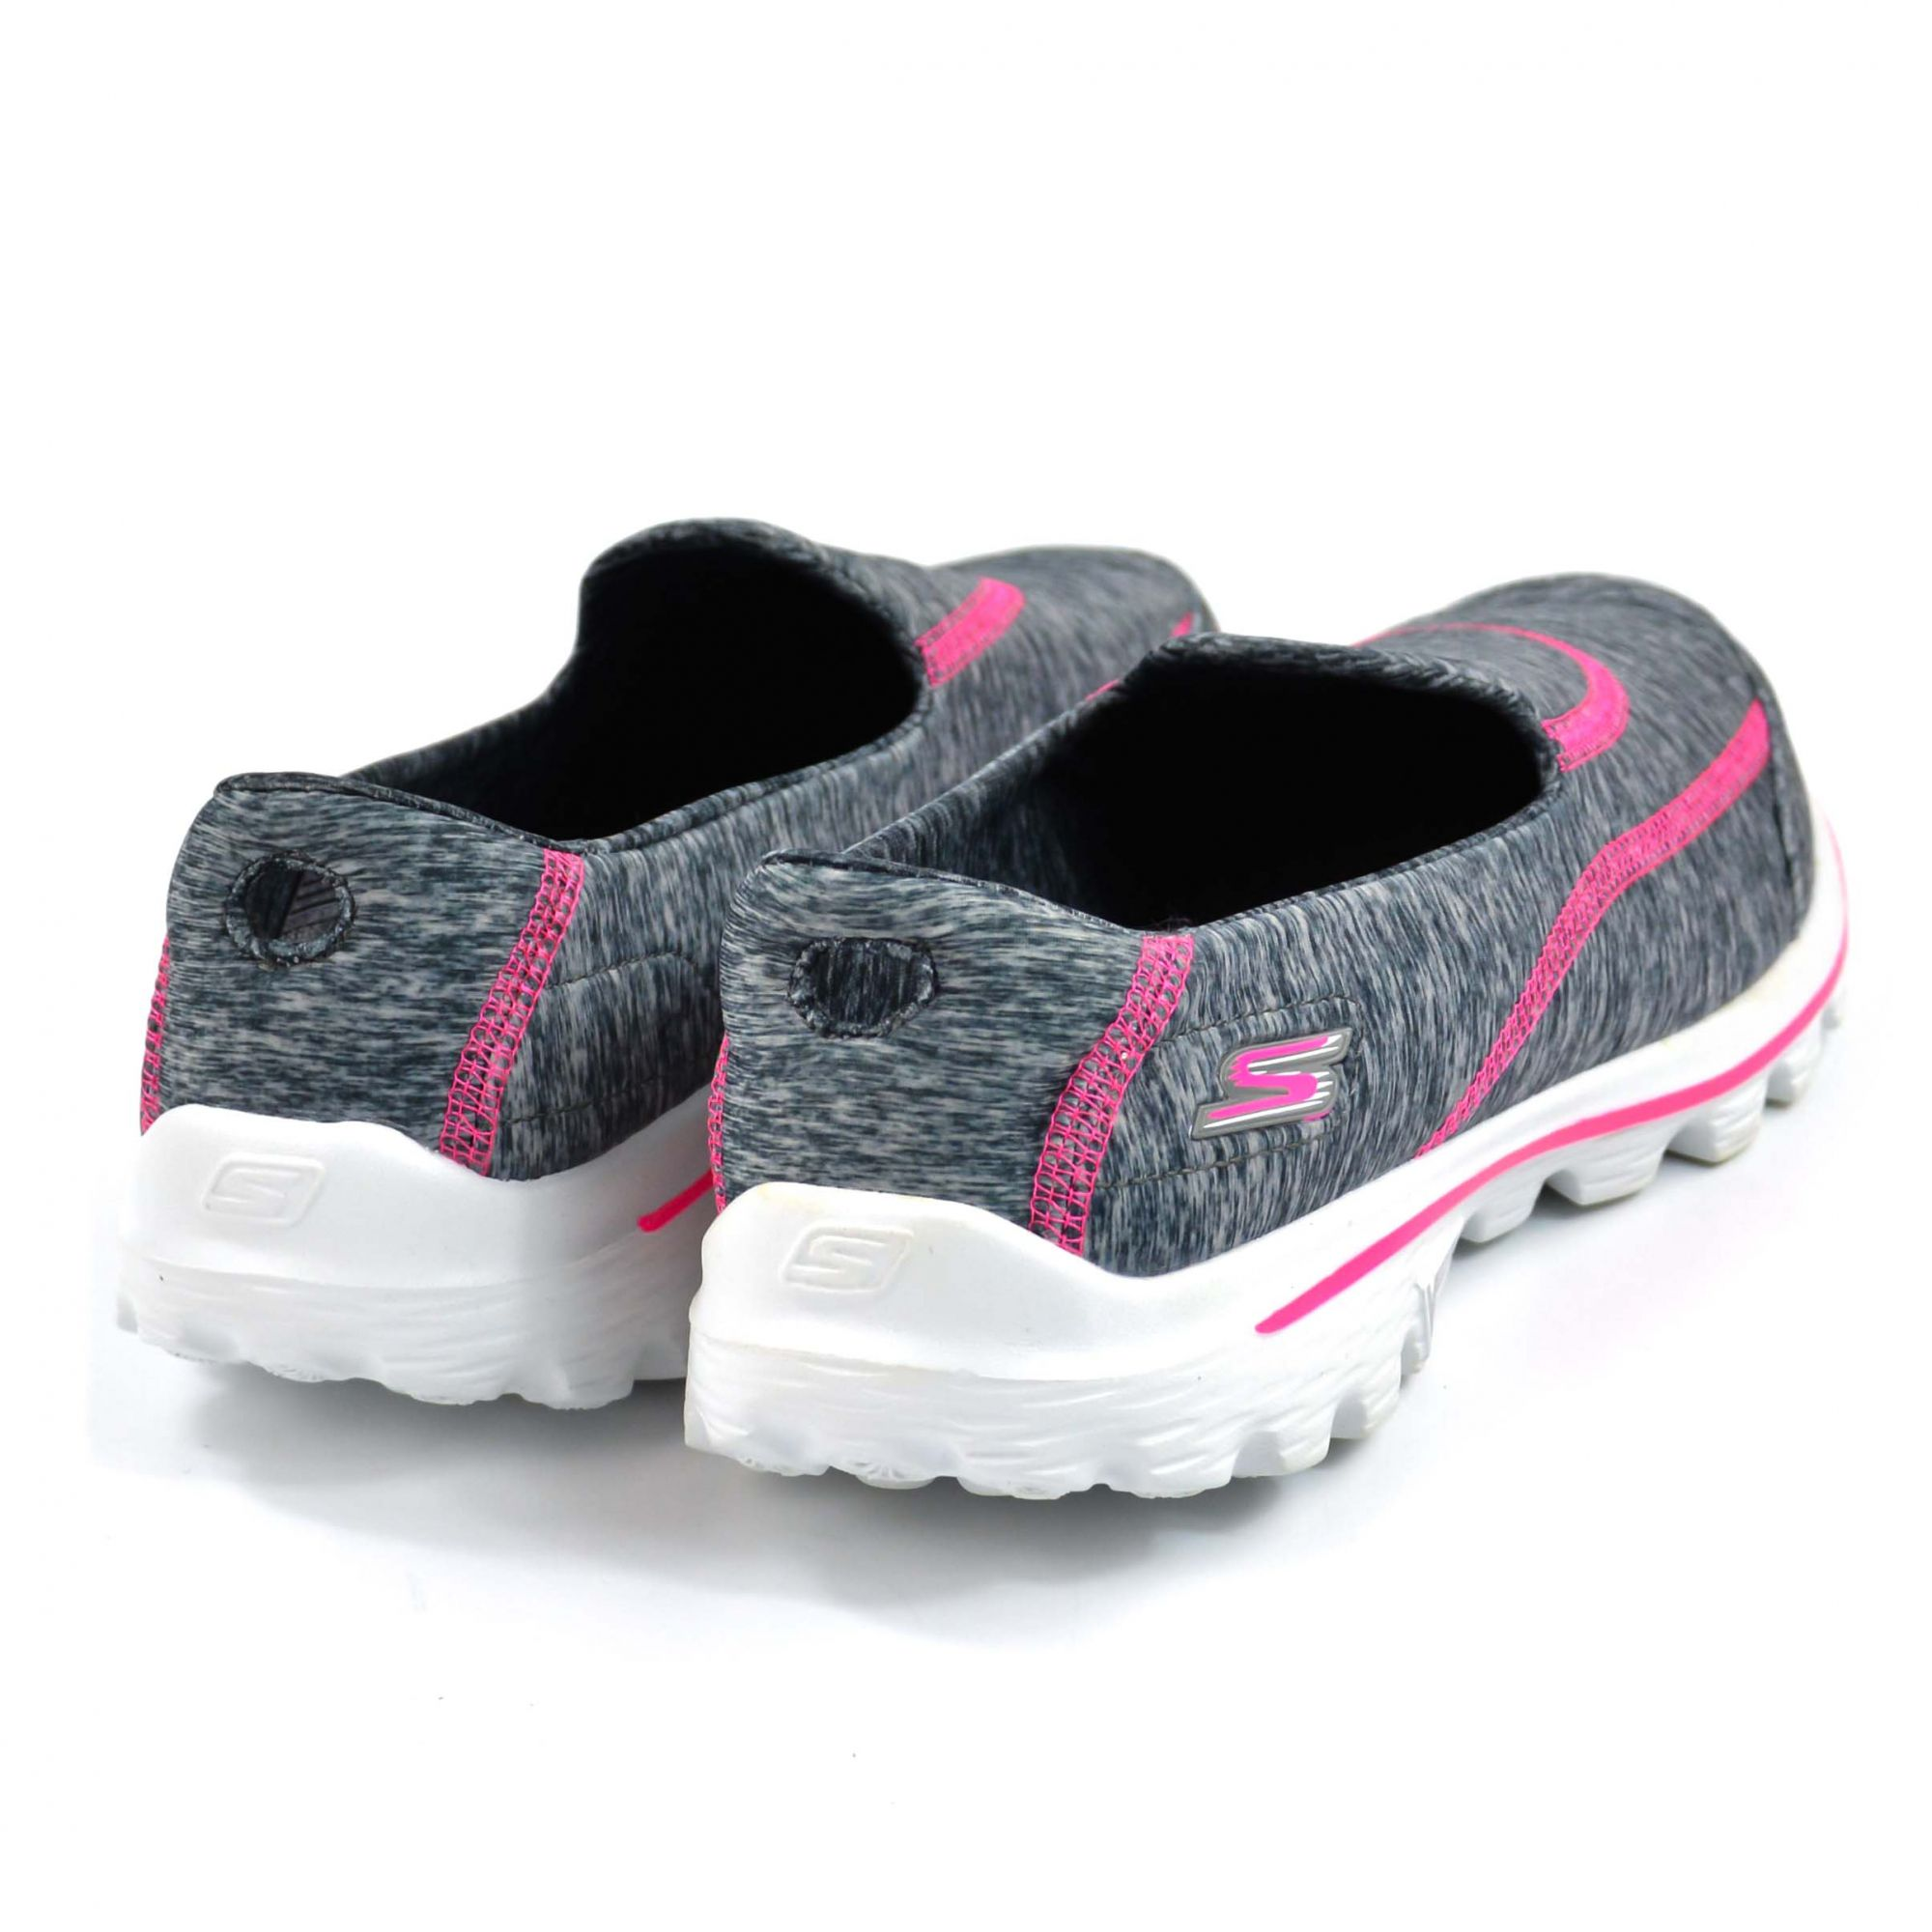 E> TENIS SLIP ON CINZA GYHP GO WALK 2 13942 SKECHERS 11110